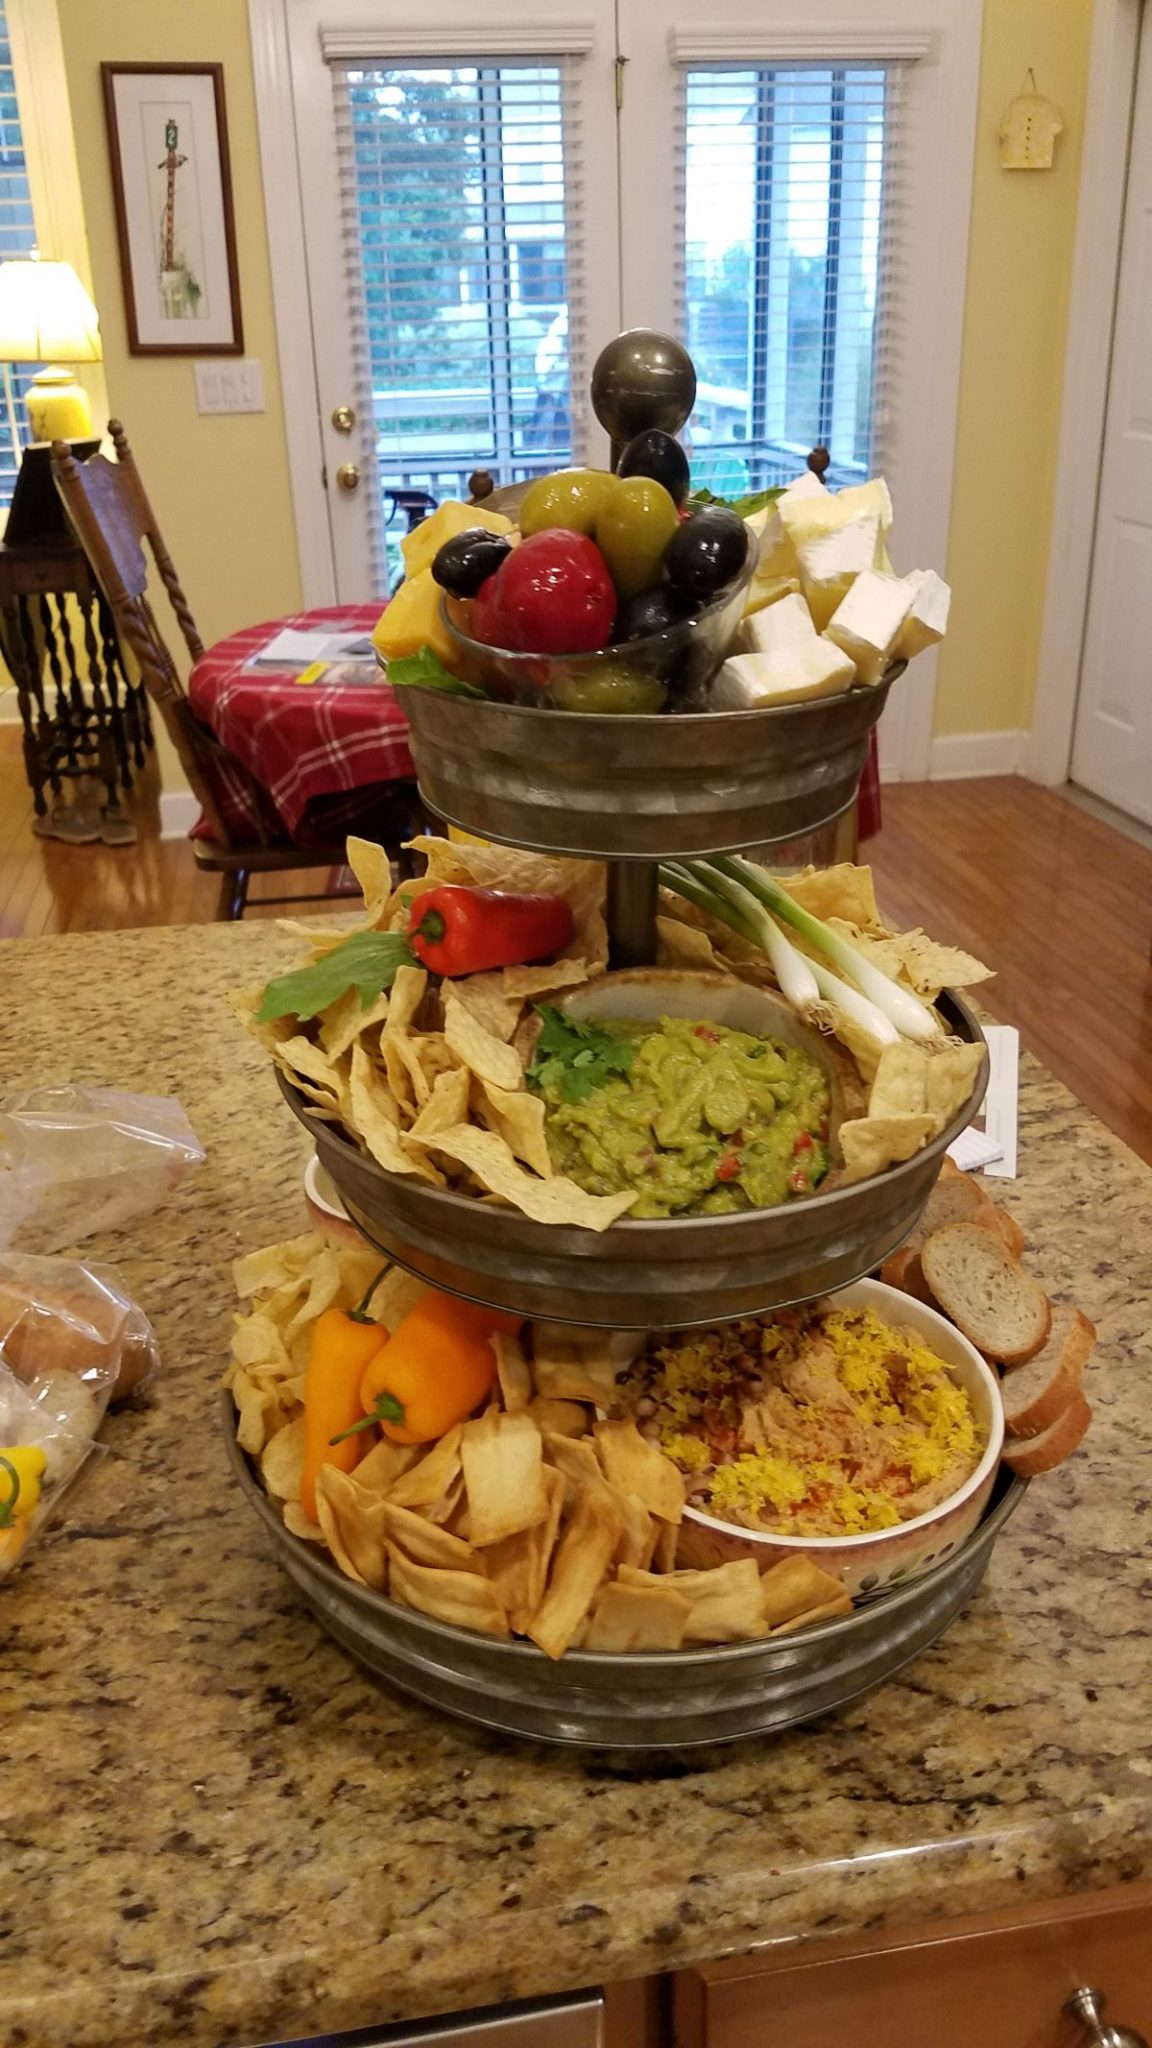 assembling a snack tray with 3 tiers